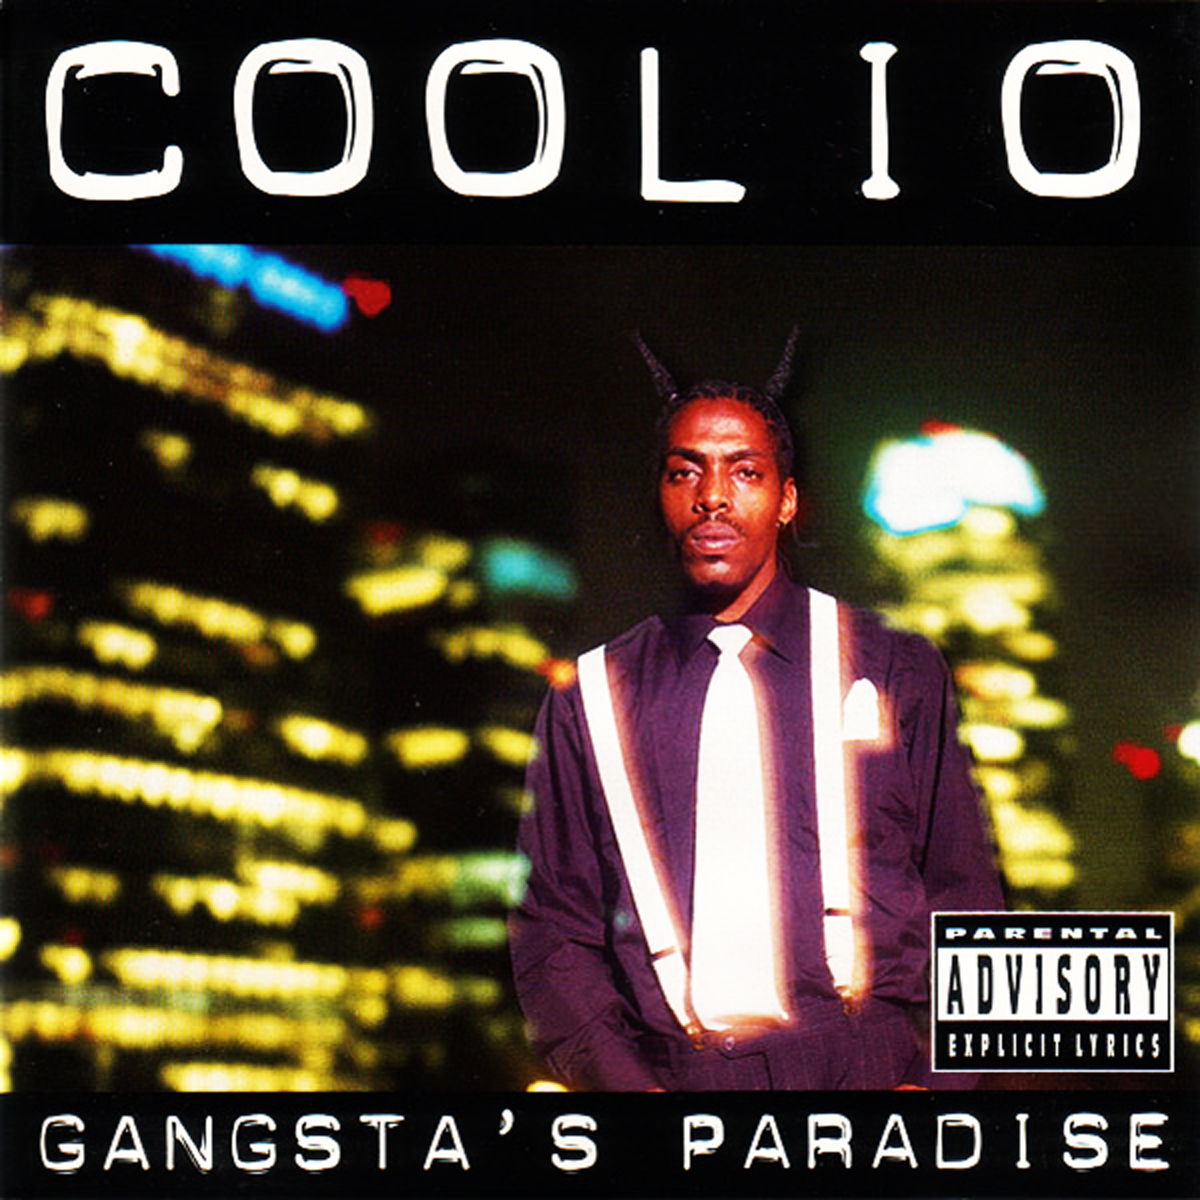 CoolioÕs GangstaÕs Paradise album cover